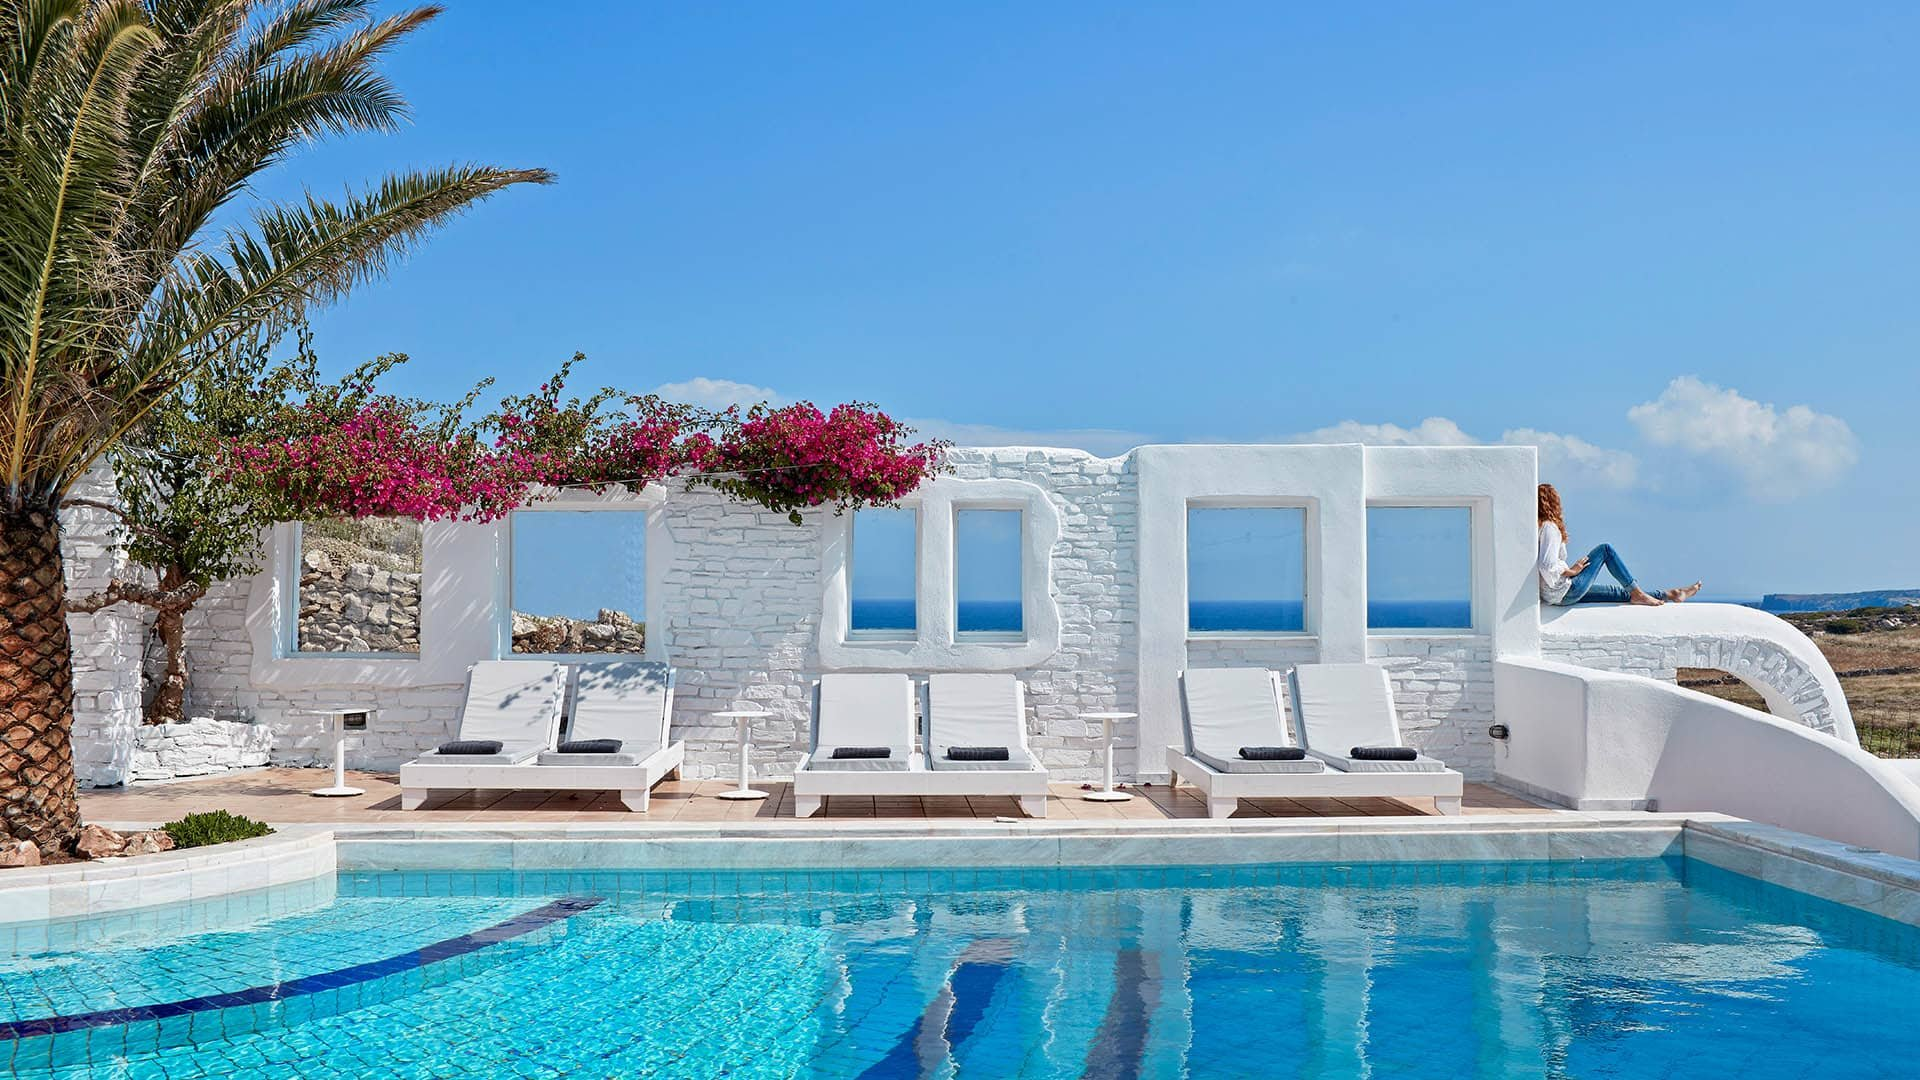 Hotel Mr. & Mrs. White - Naousa - Paros